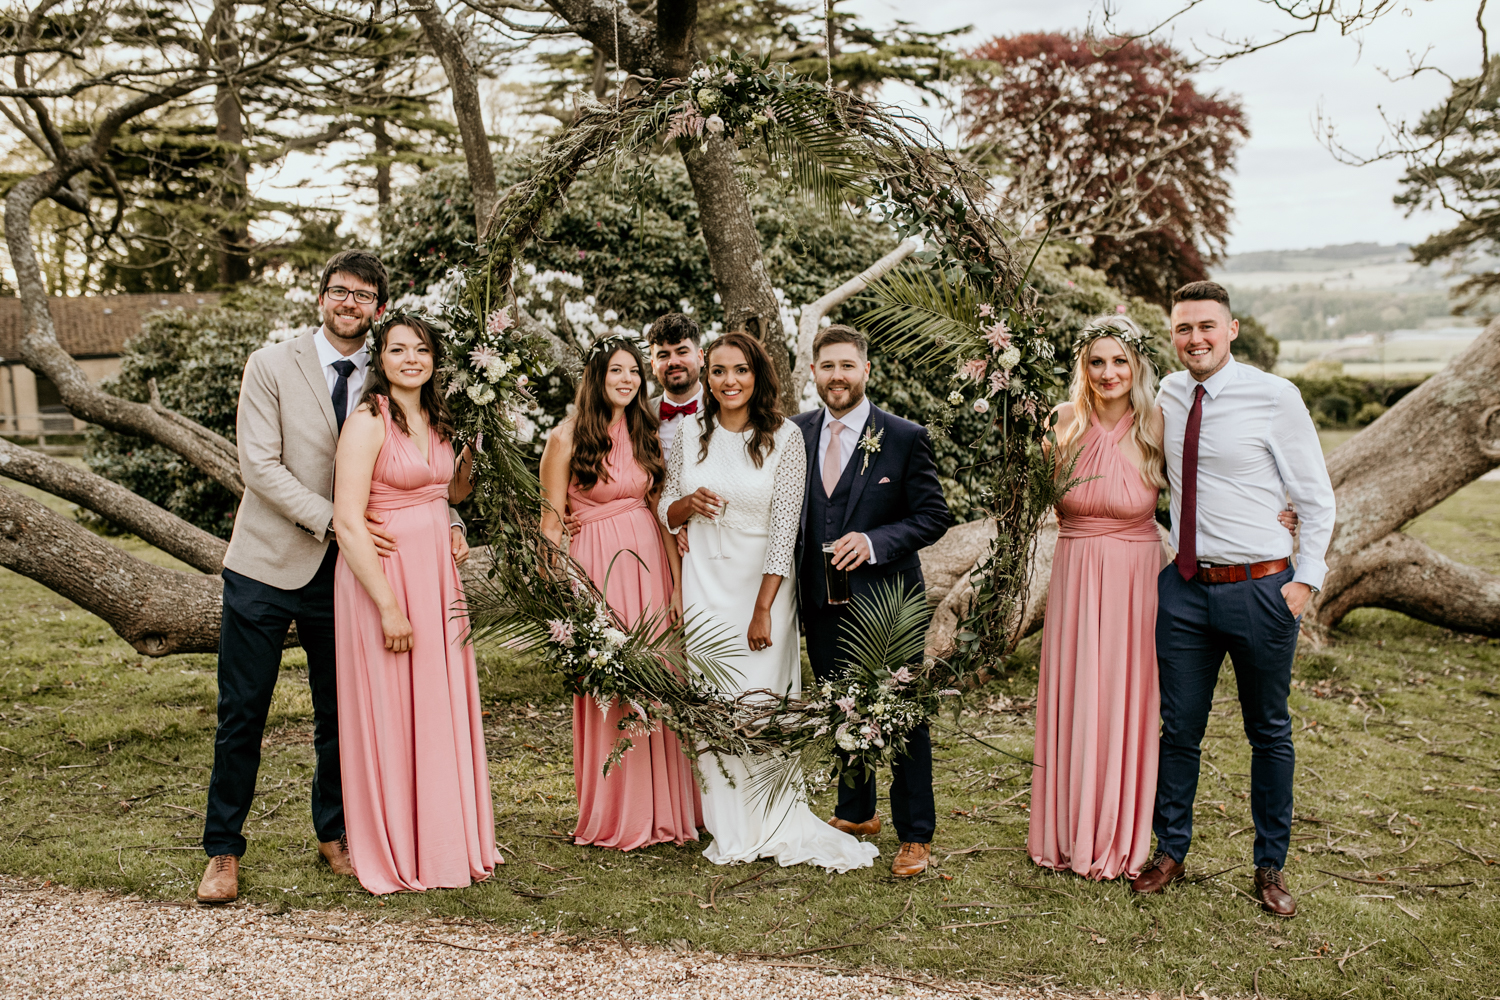 group photo with bridesmaids in front of foliage circle at Coombe Lodge Blagdon wedding venue